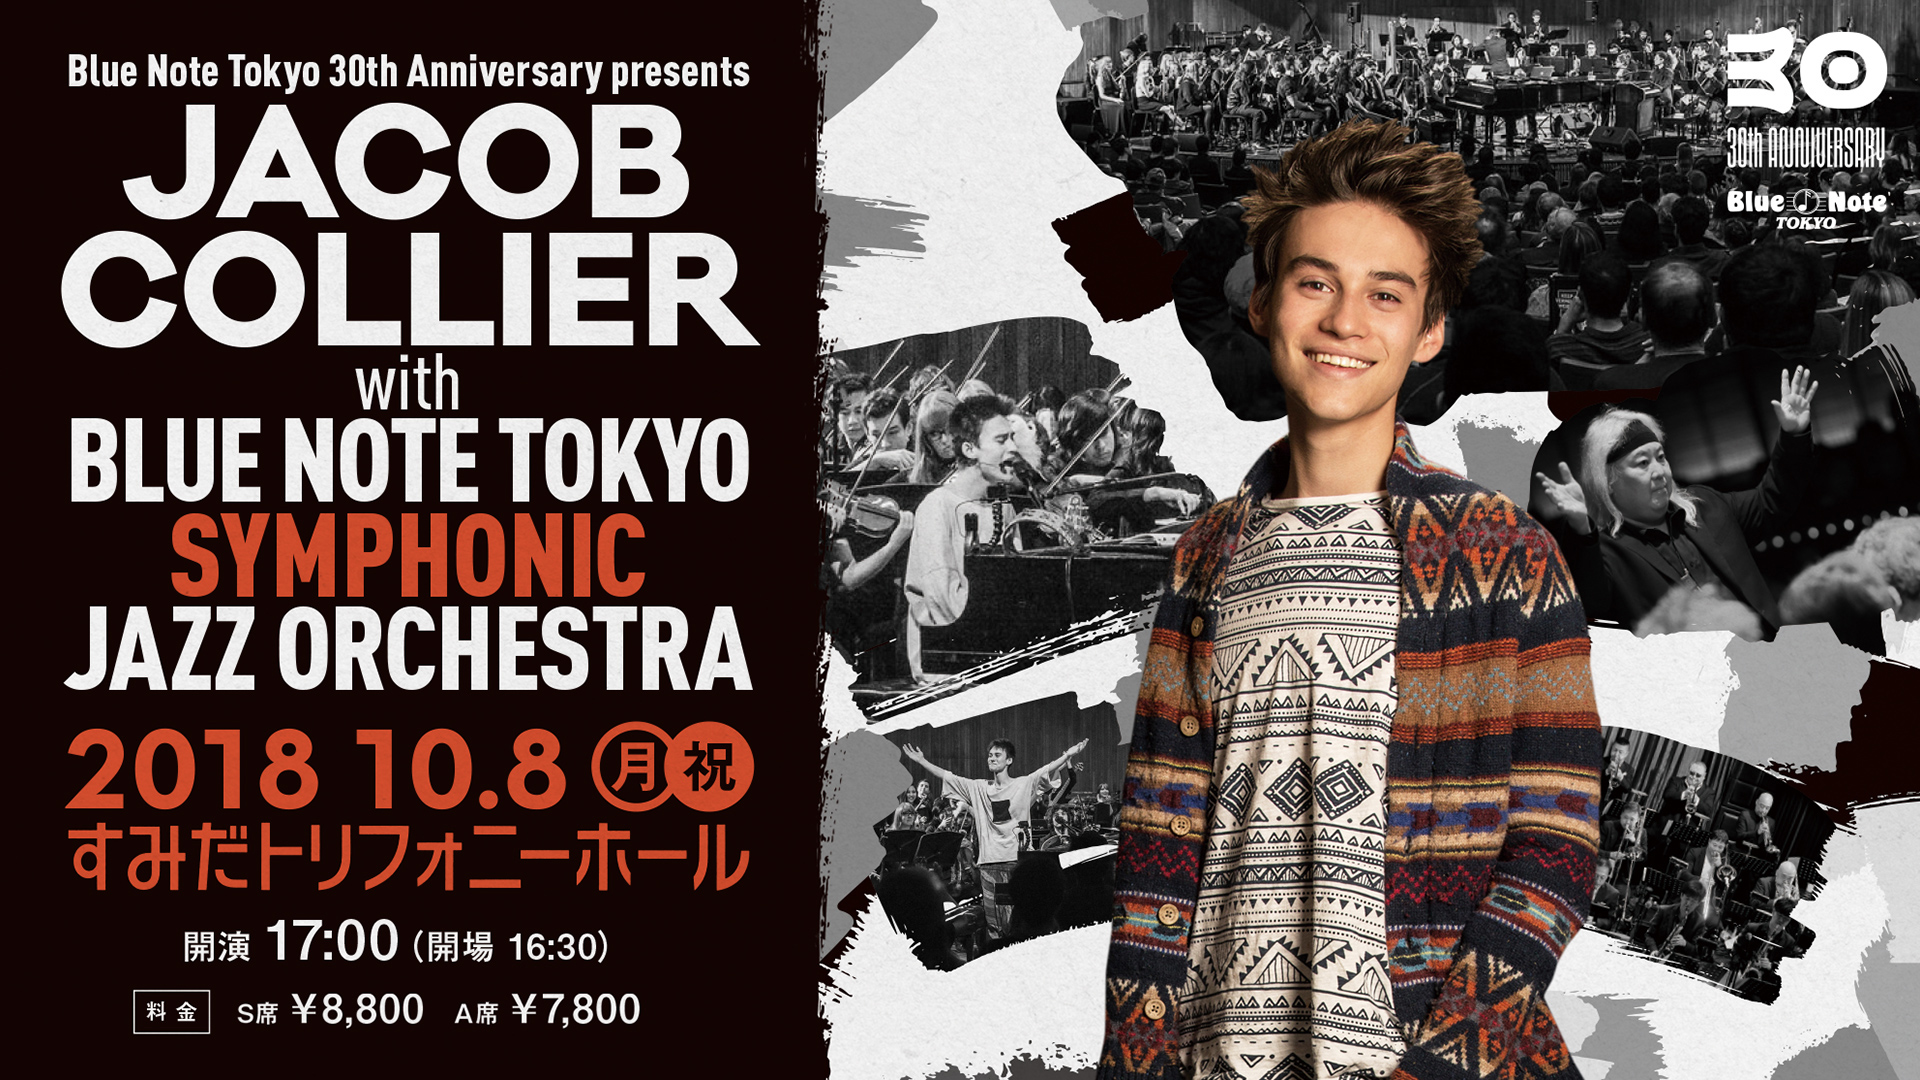 20181008JACOBCOLLIER_image05.jpg